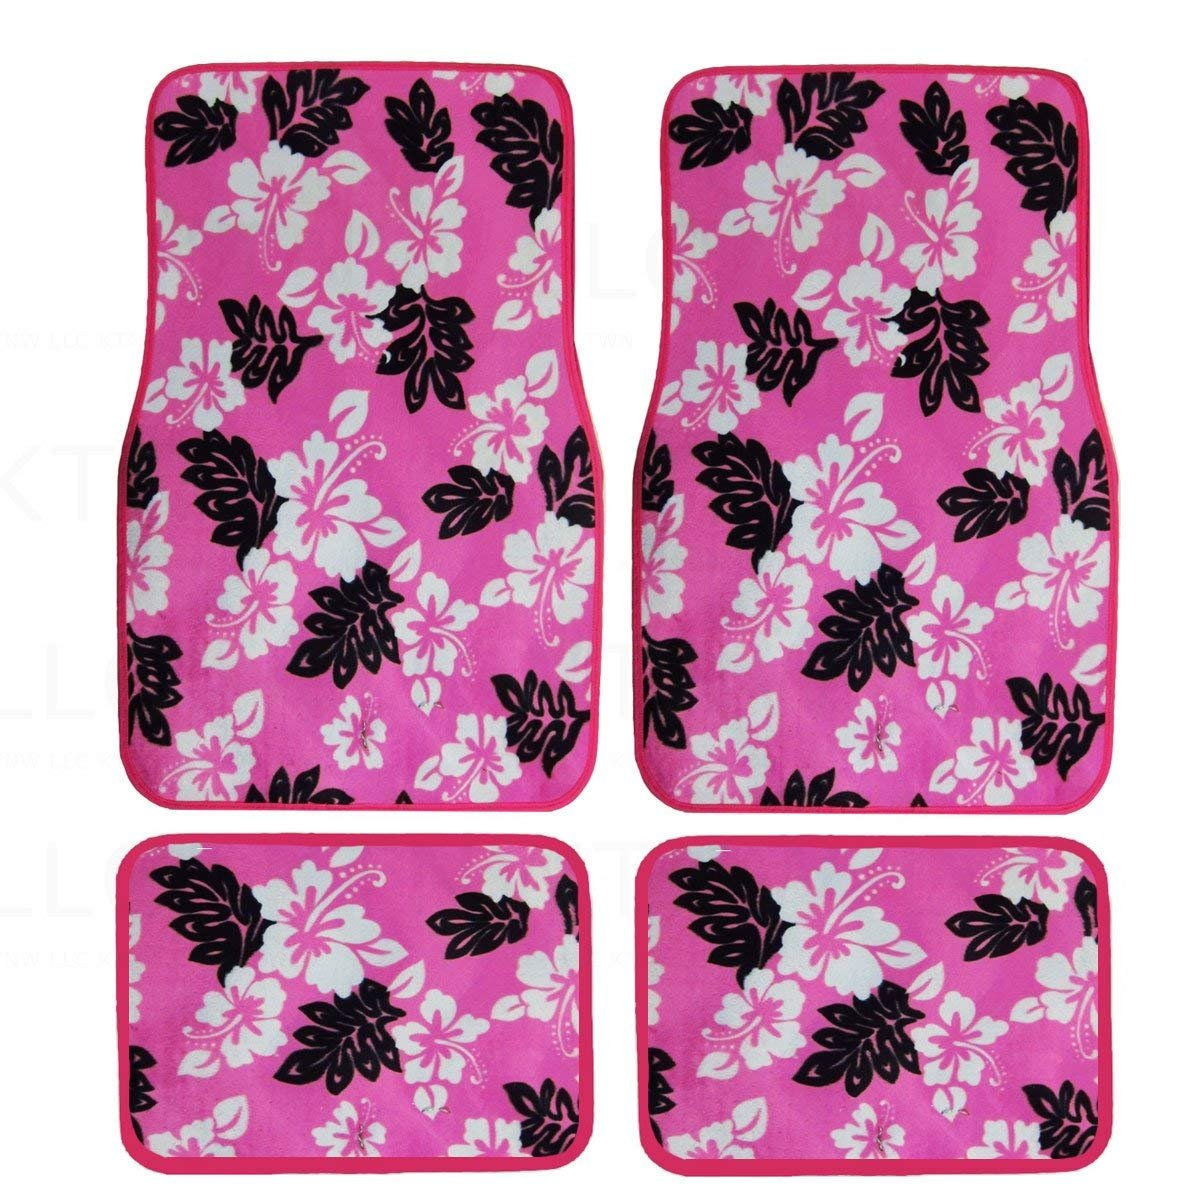 A Set of 4 Universal Fit Hawaii Hibiscus Carpet Floor Mats for Cars / Truck - Pink